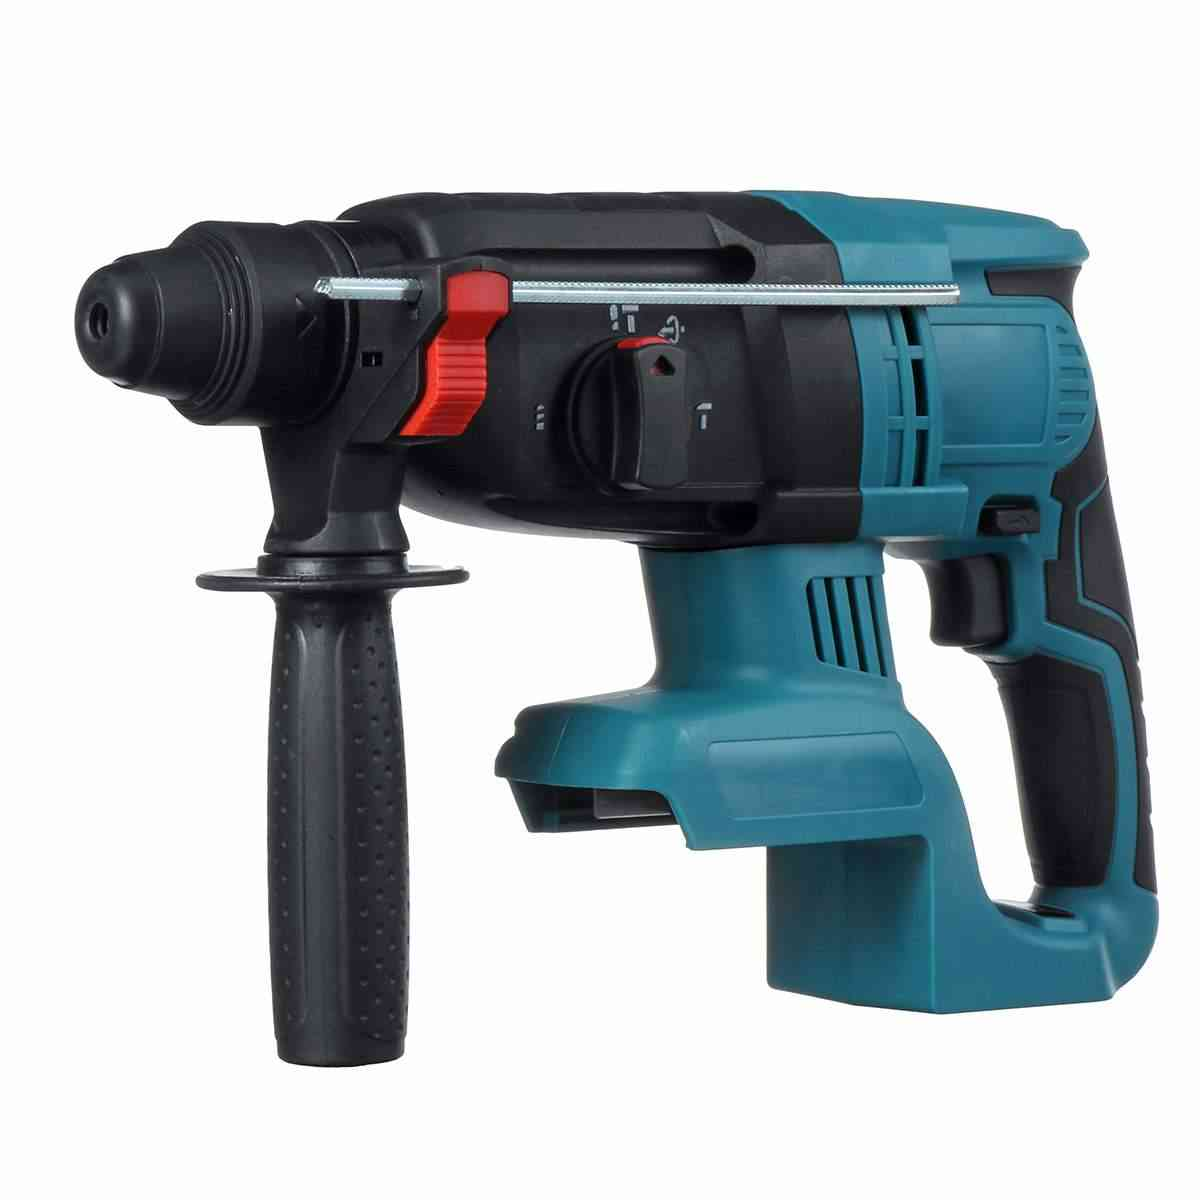 4 Functions Electric Rotary Hammer Drill Rechargeable Hammer